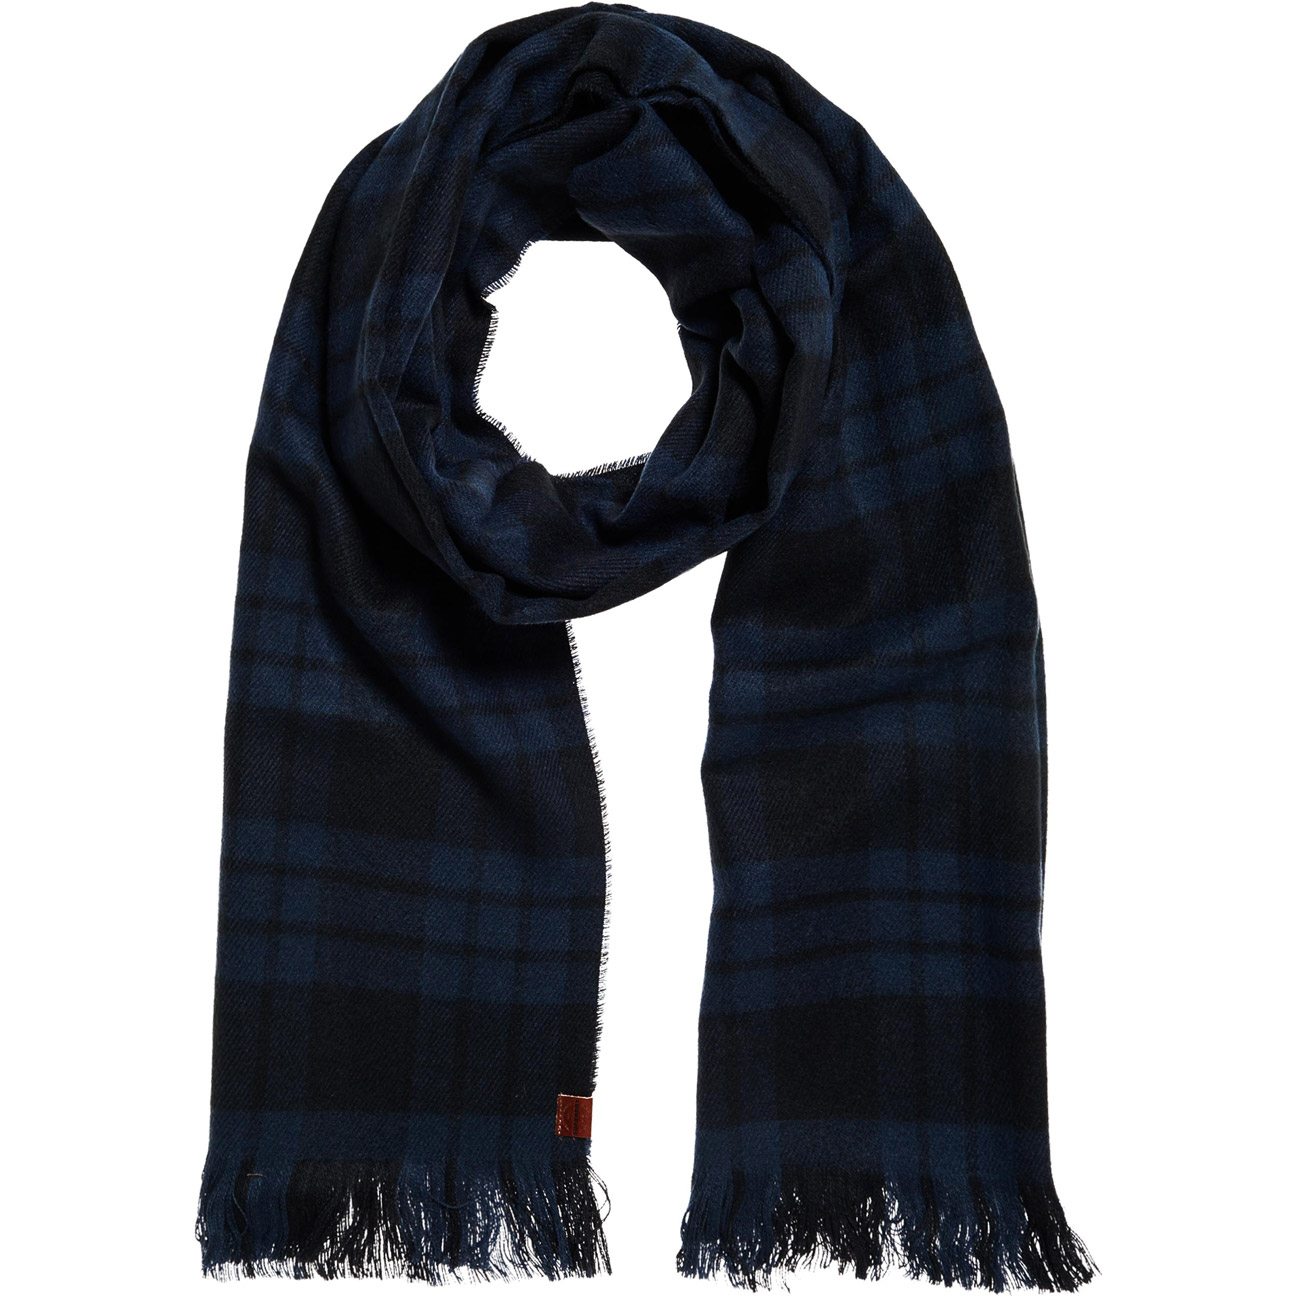 Superdry herren schal capital check tassle scarf for Schal binden herren